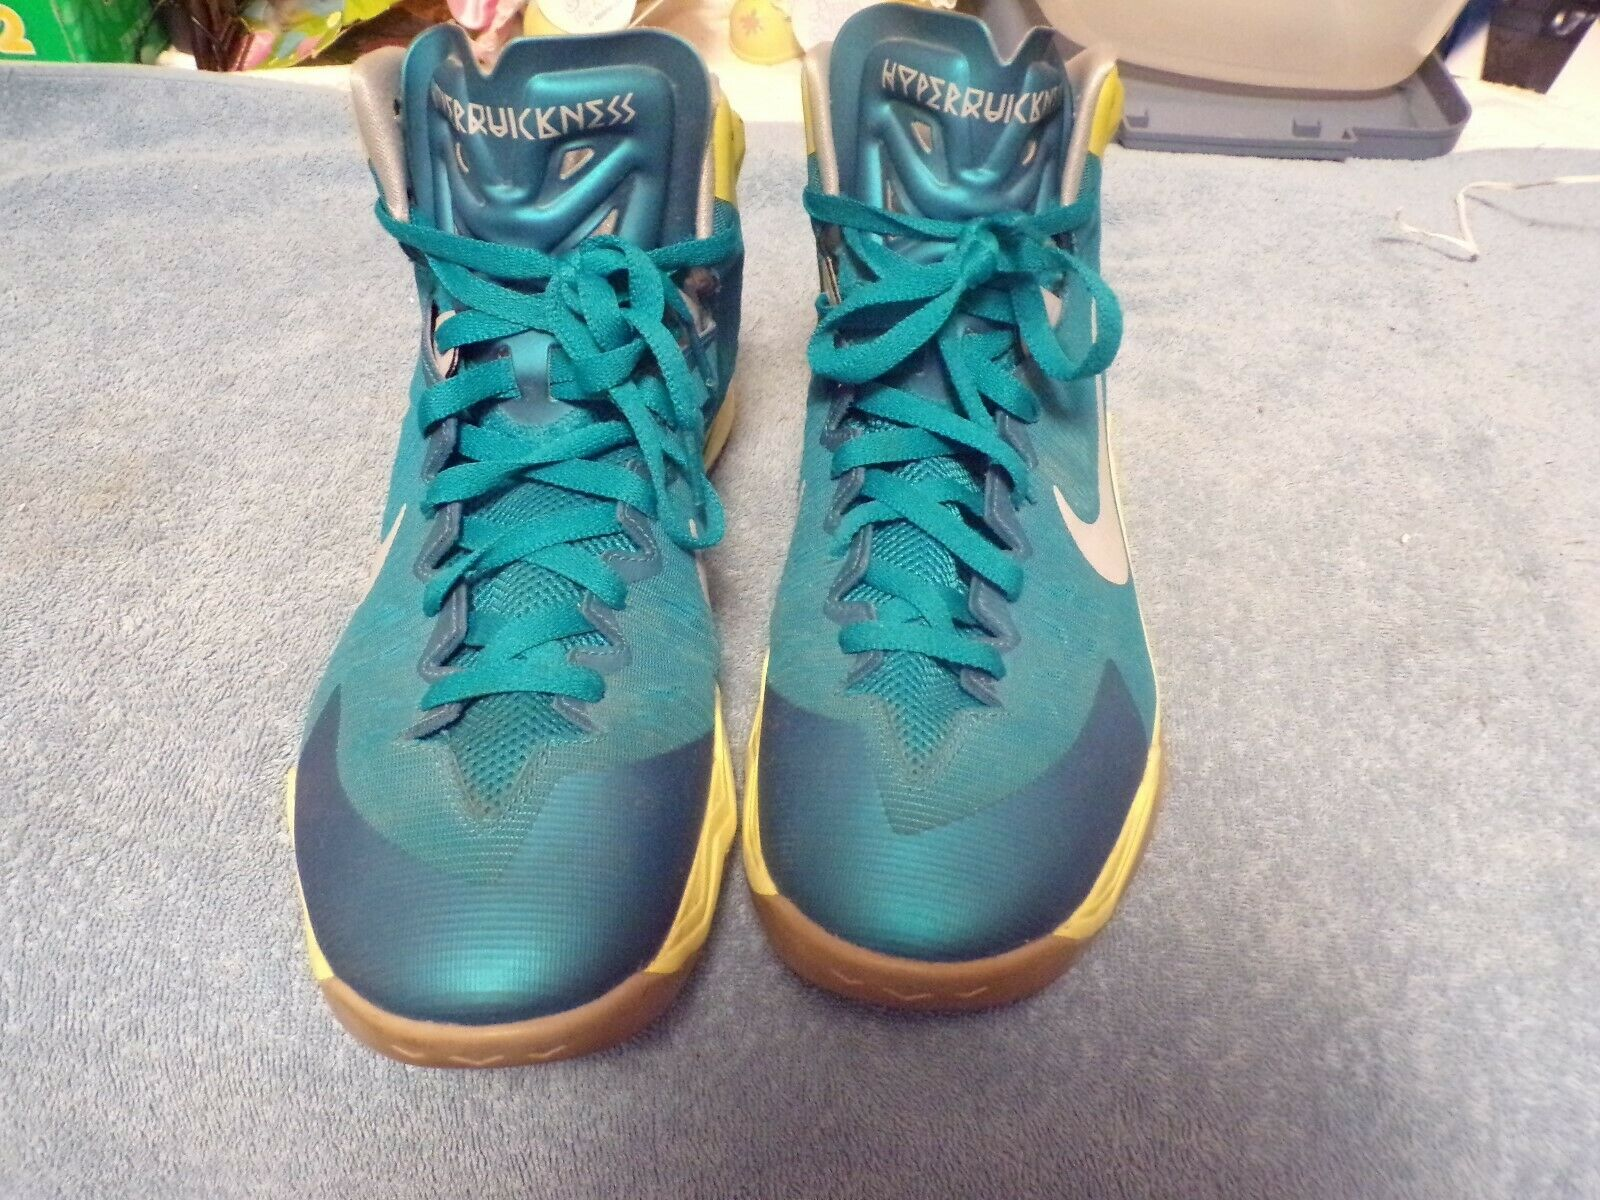 Pair of HyperQuickness Nike shoes (Size 12.5)